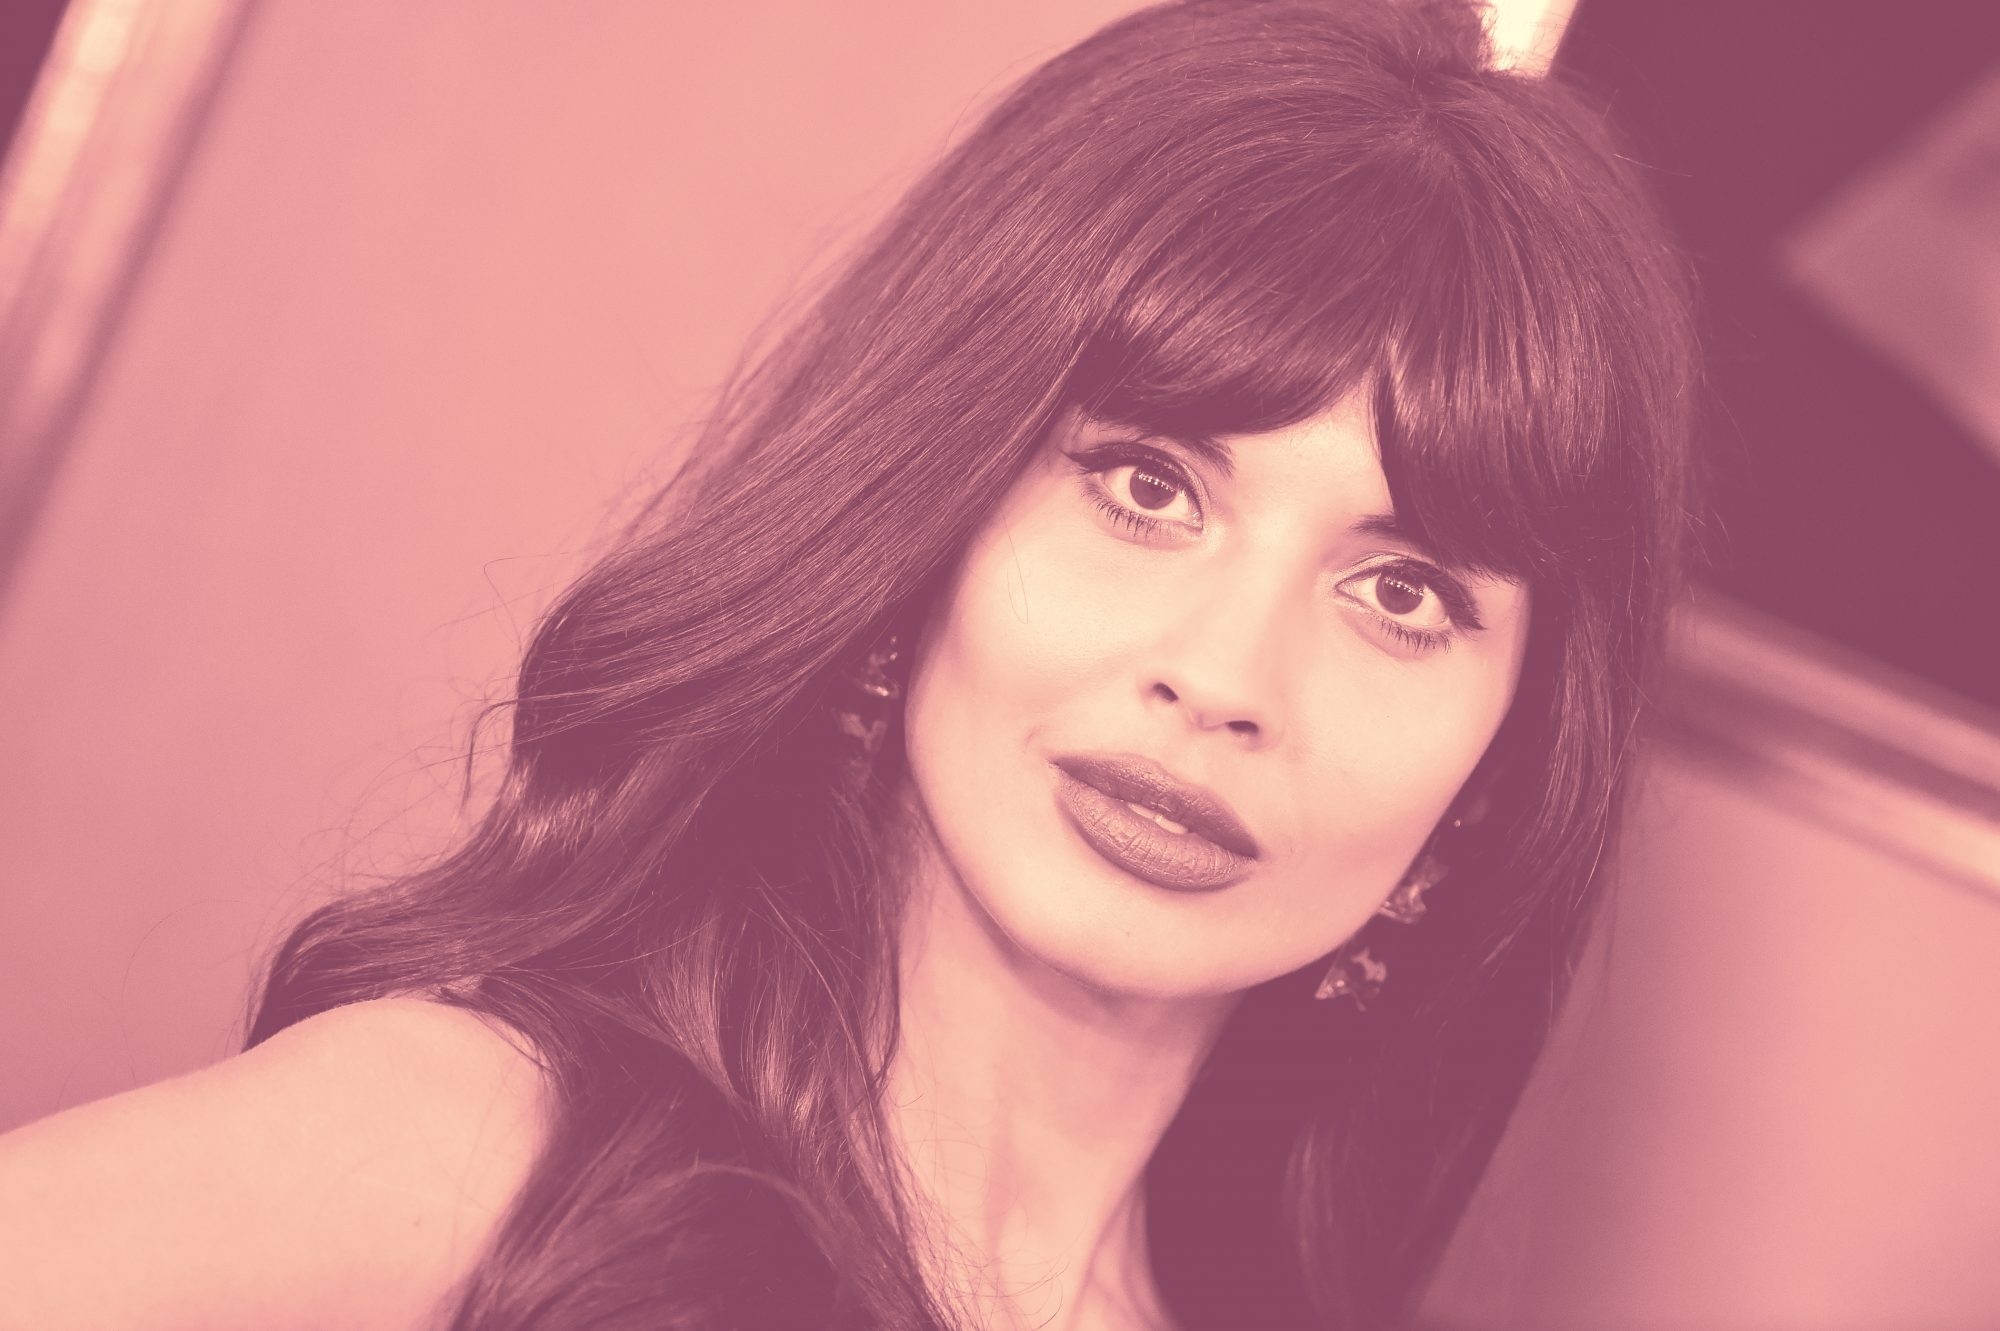 Jameela Jamil Reveals She Had an Abortion, Calling It 'the Best Decision I Have Ever Made'